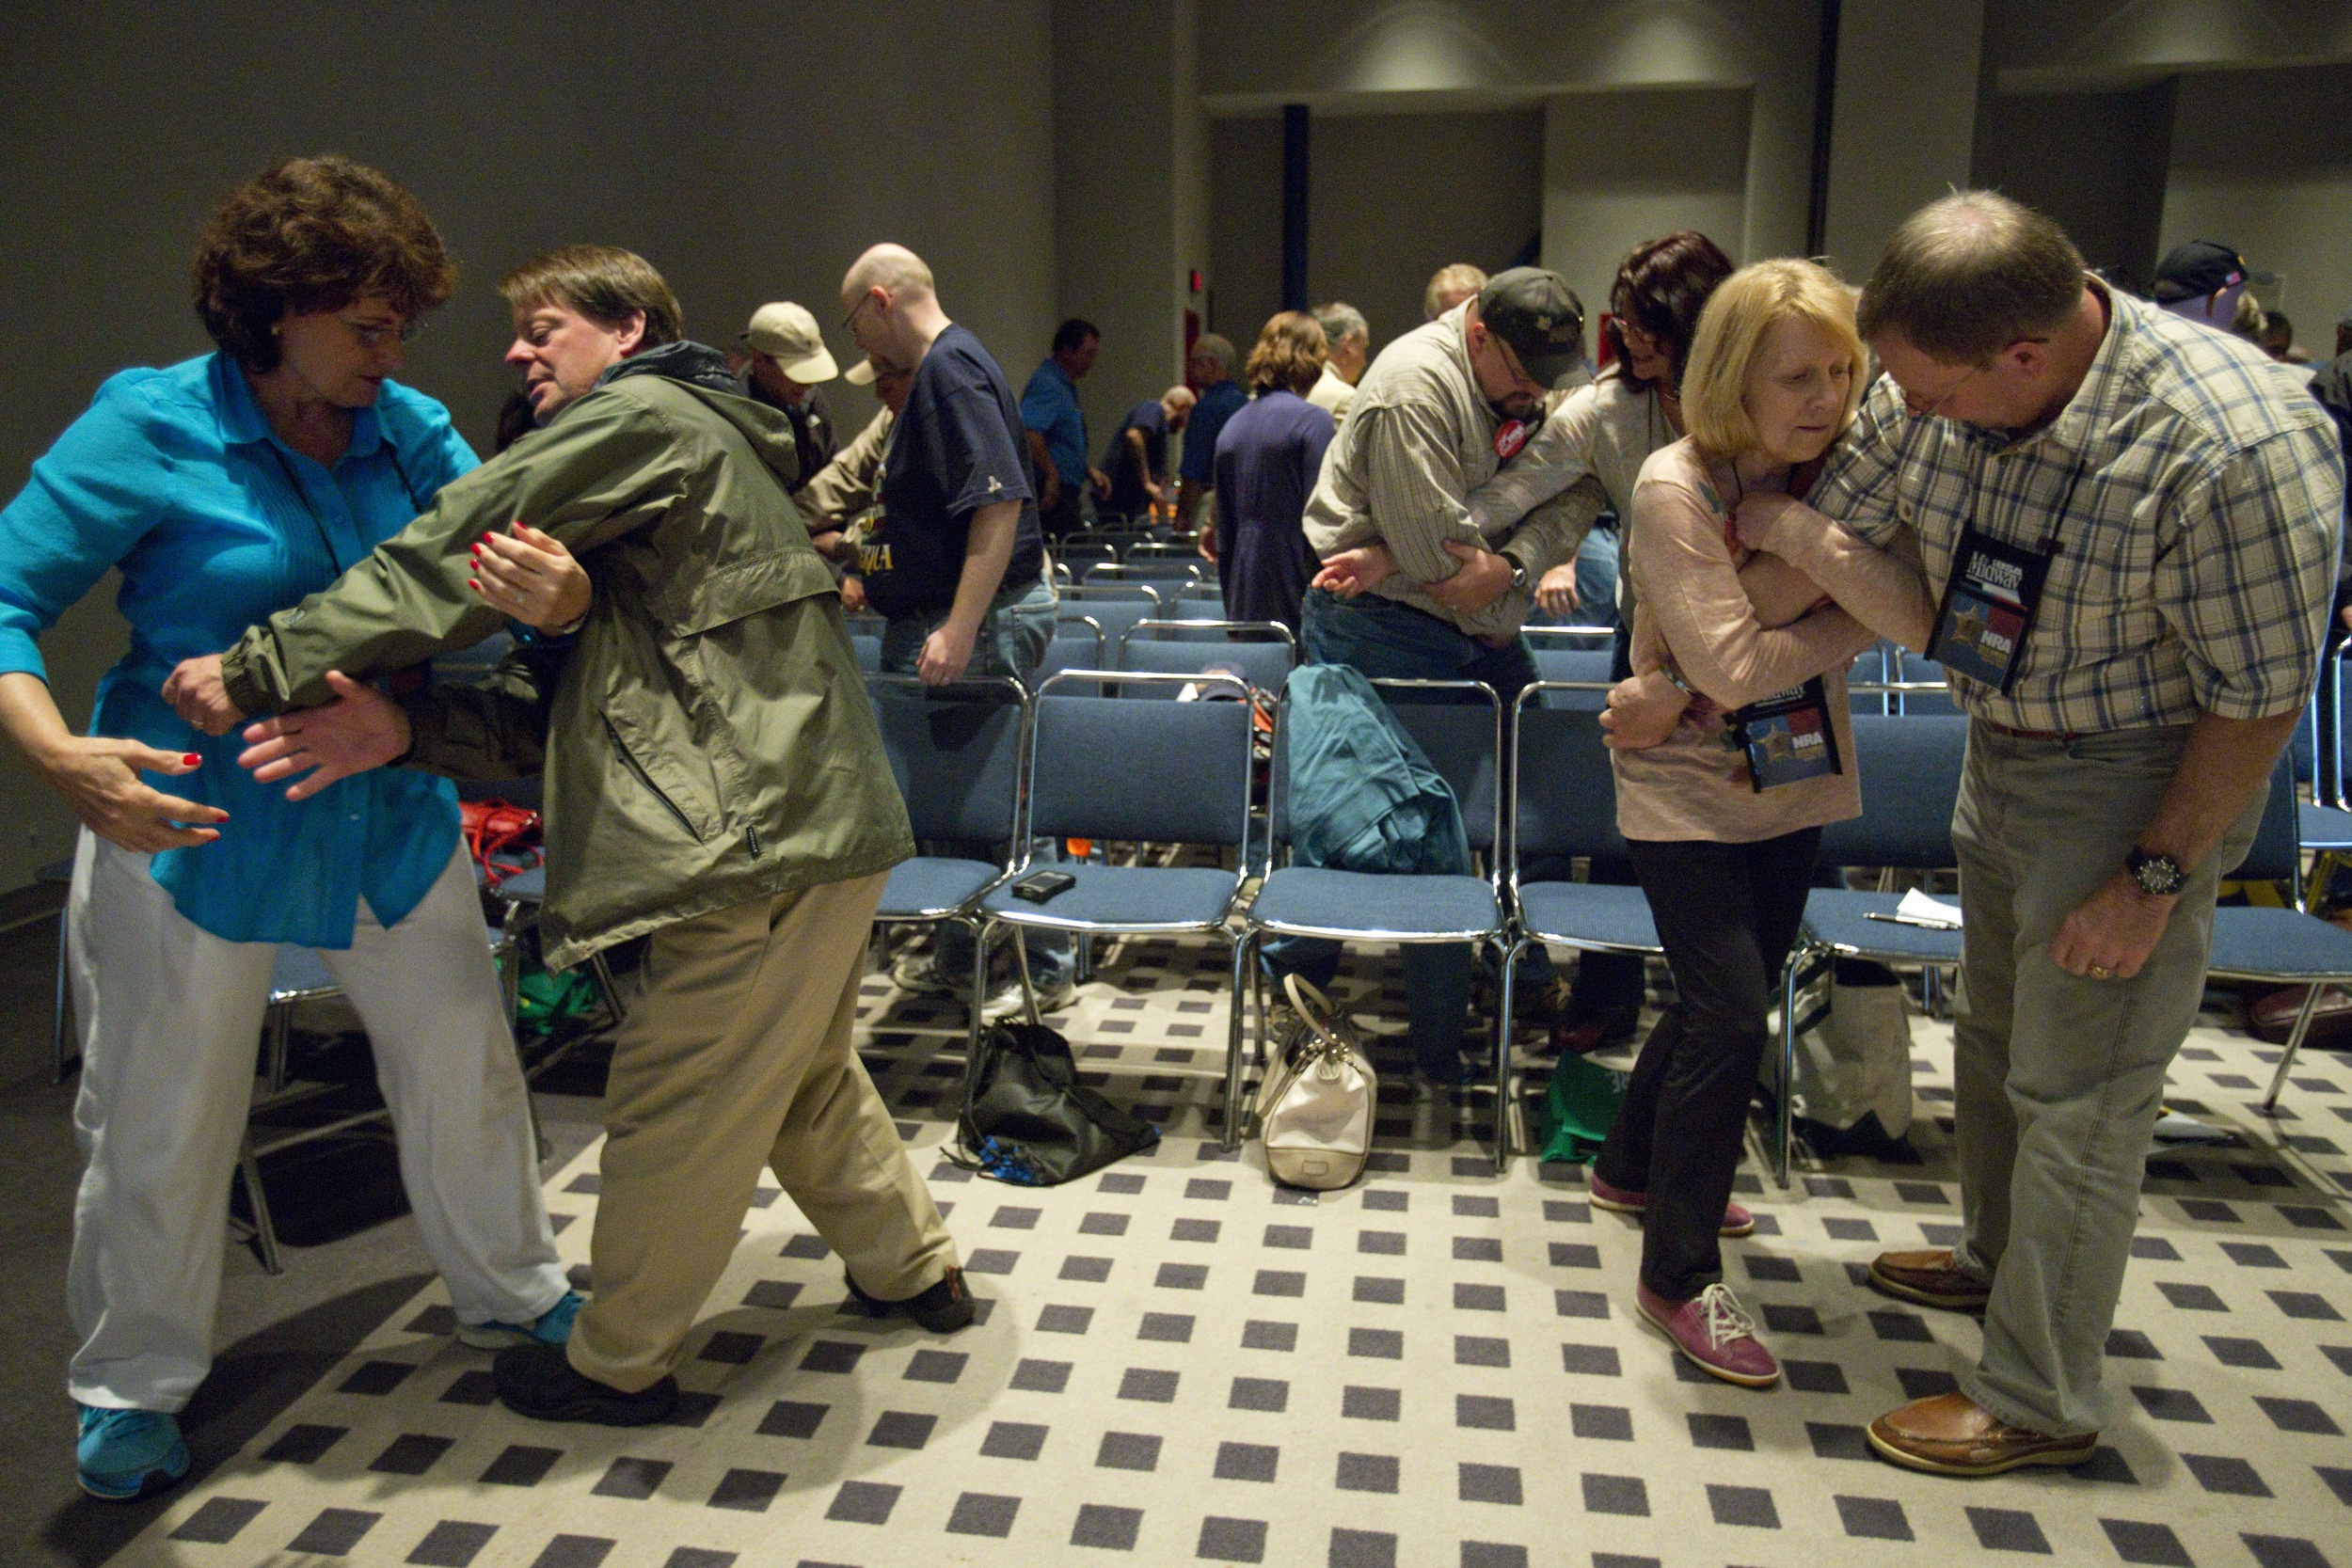 Philip and Kitty Cox, of Memphis , TN, left, and John and Linda Kimble, of Denver, CO, practice handgun retention techniques during a workshop at the 2013 National Rifle Association Meeting and Exhibits May 4, 2013 in Houston.